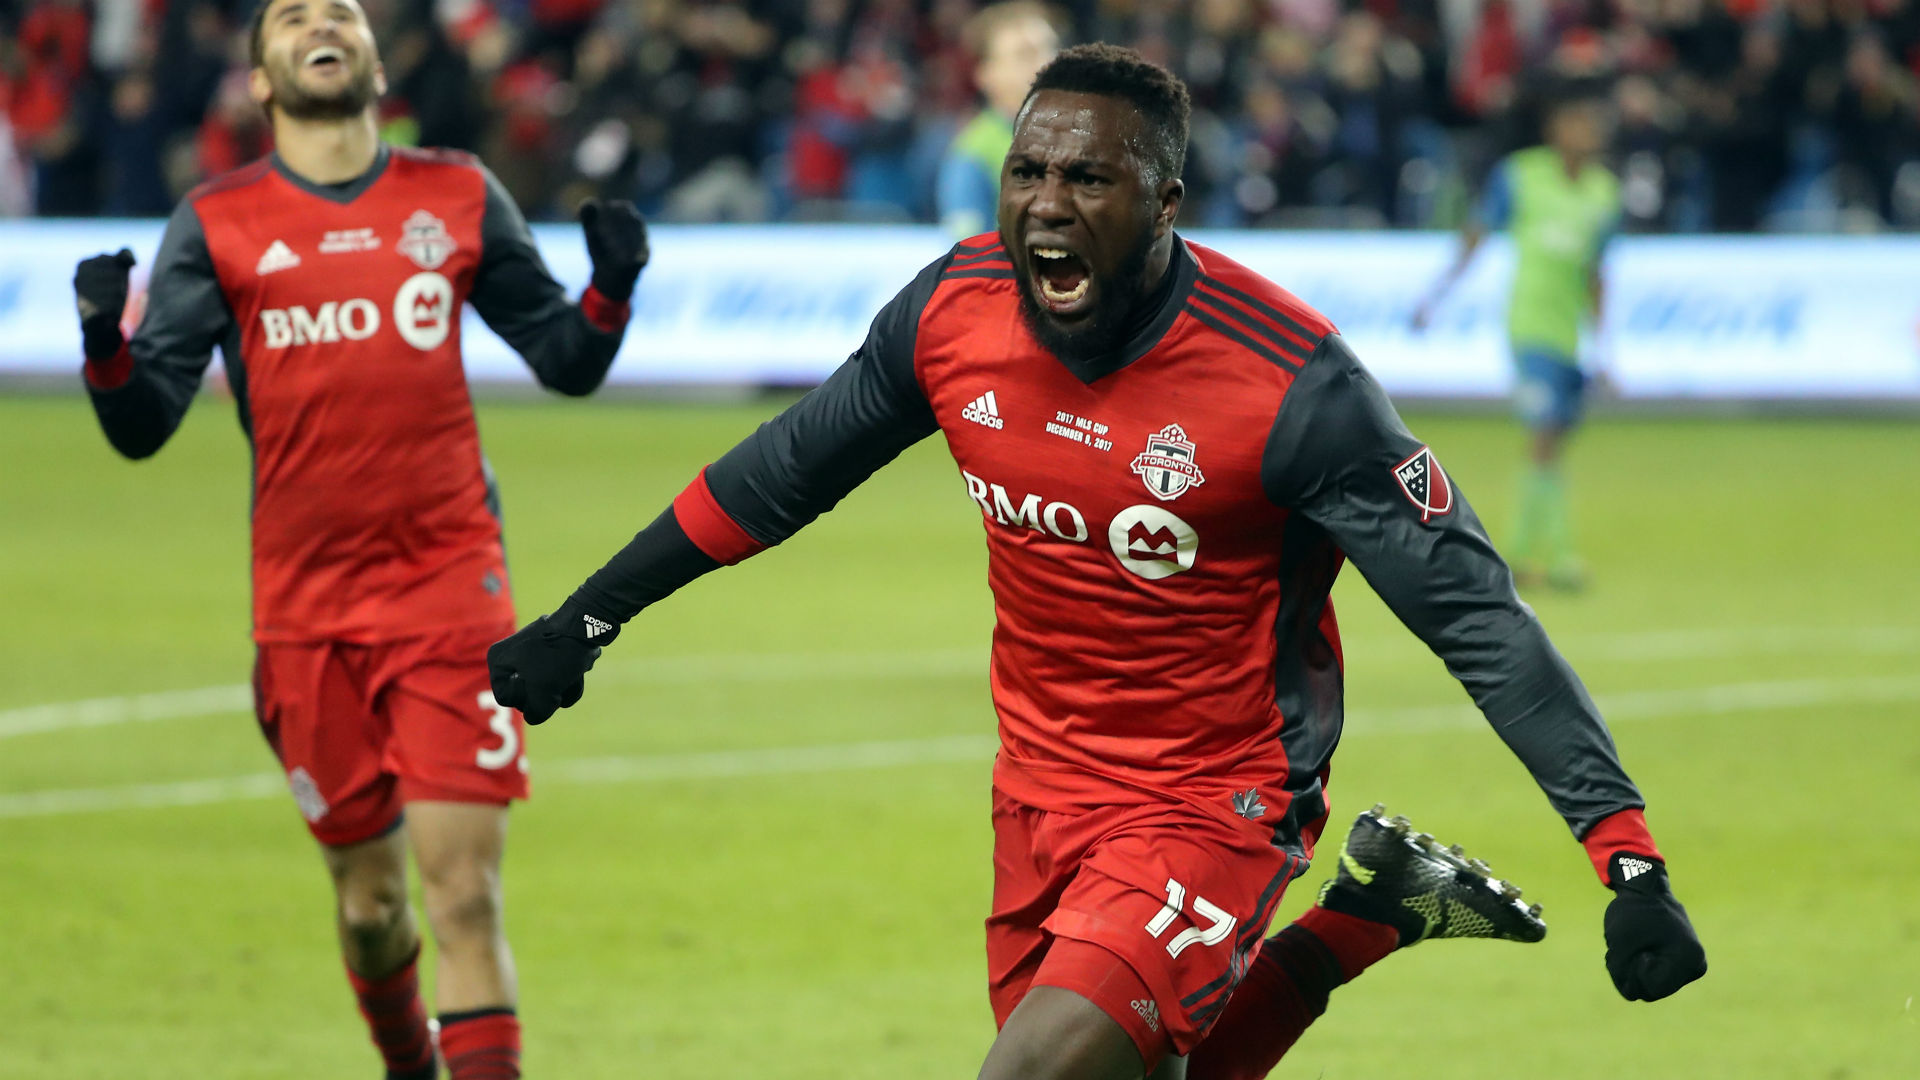 Twitter reacts to Toronto FC's MLS Cup win over Sounders